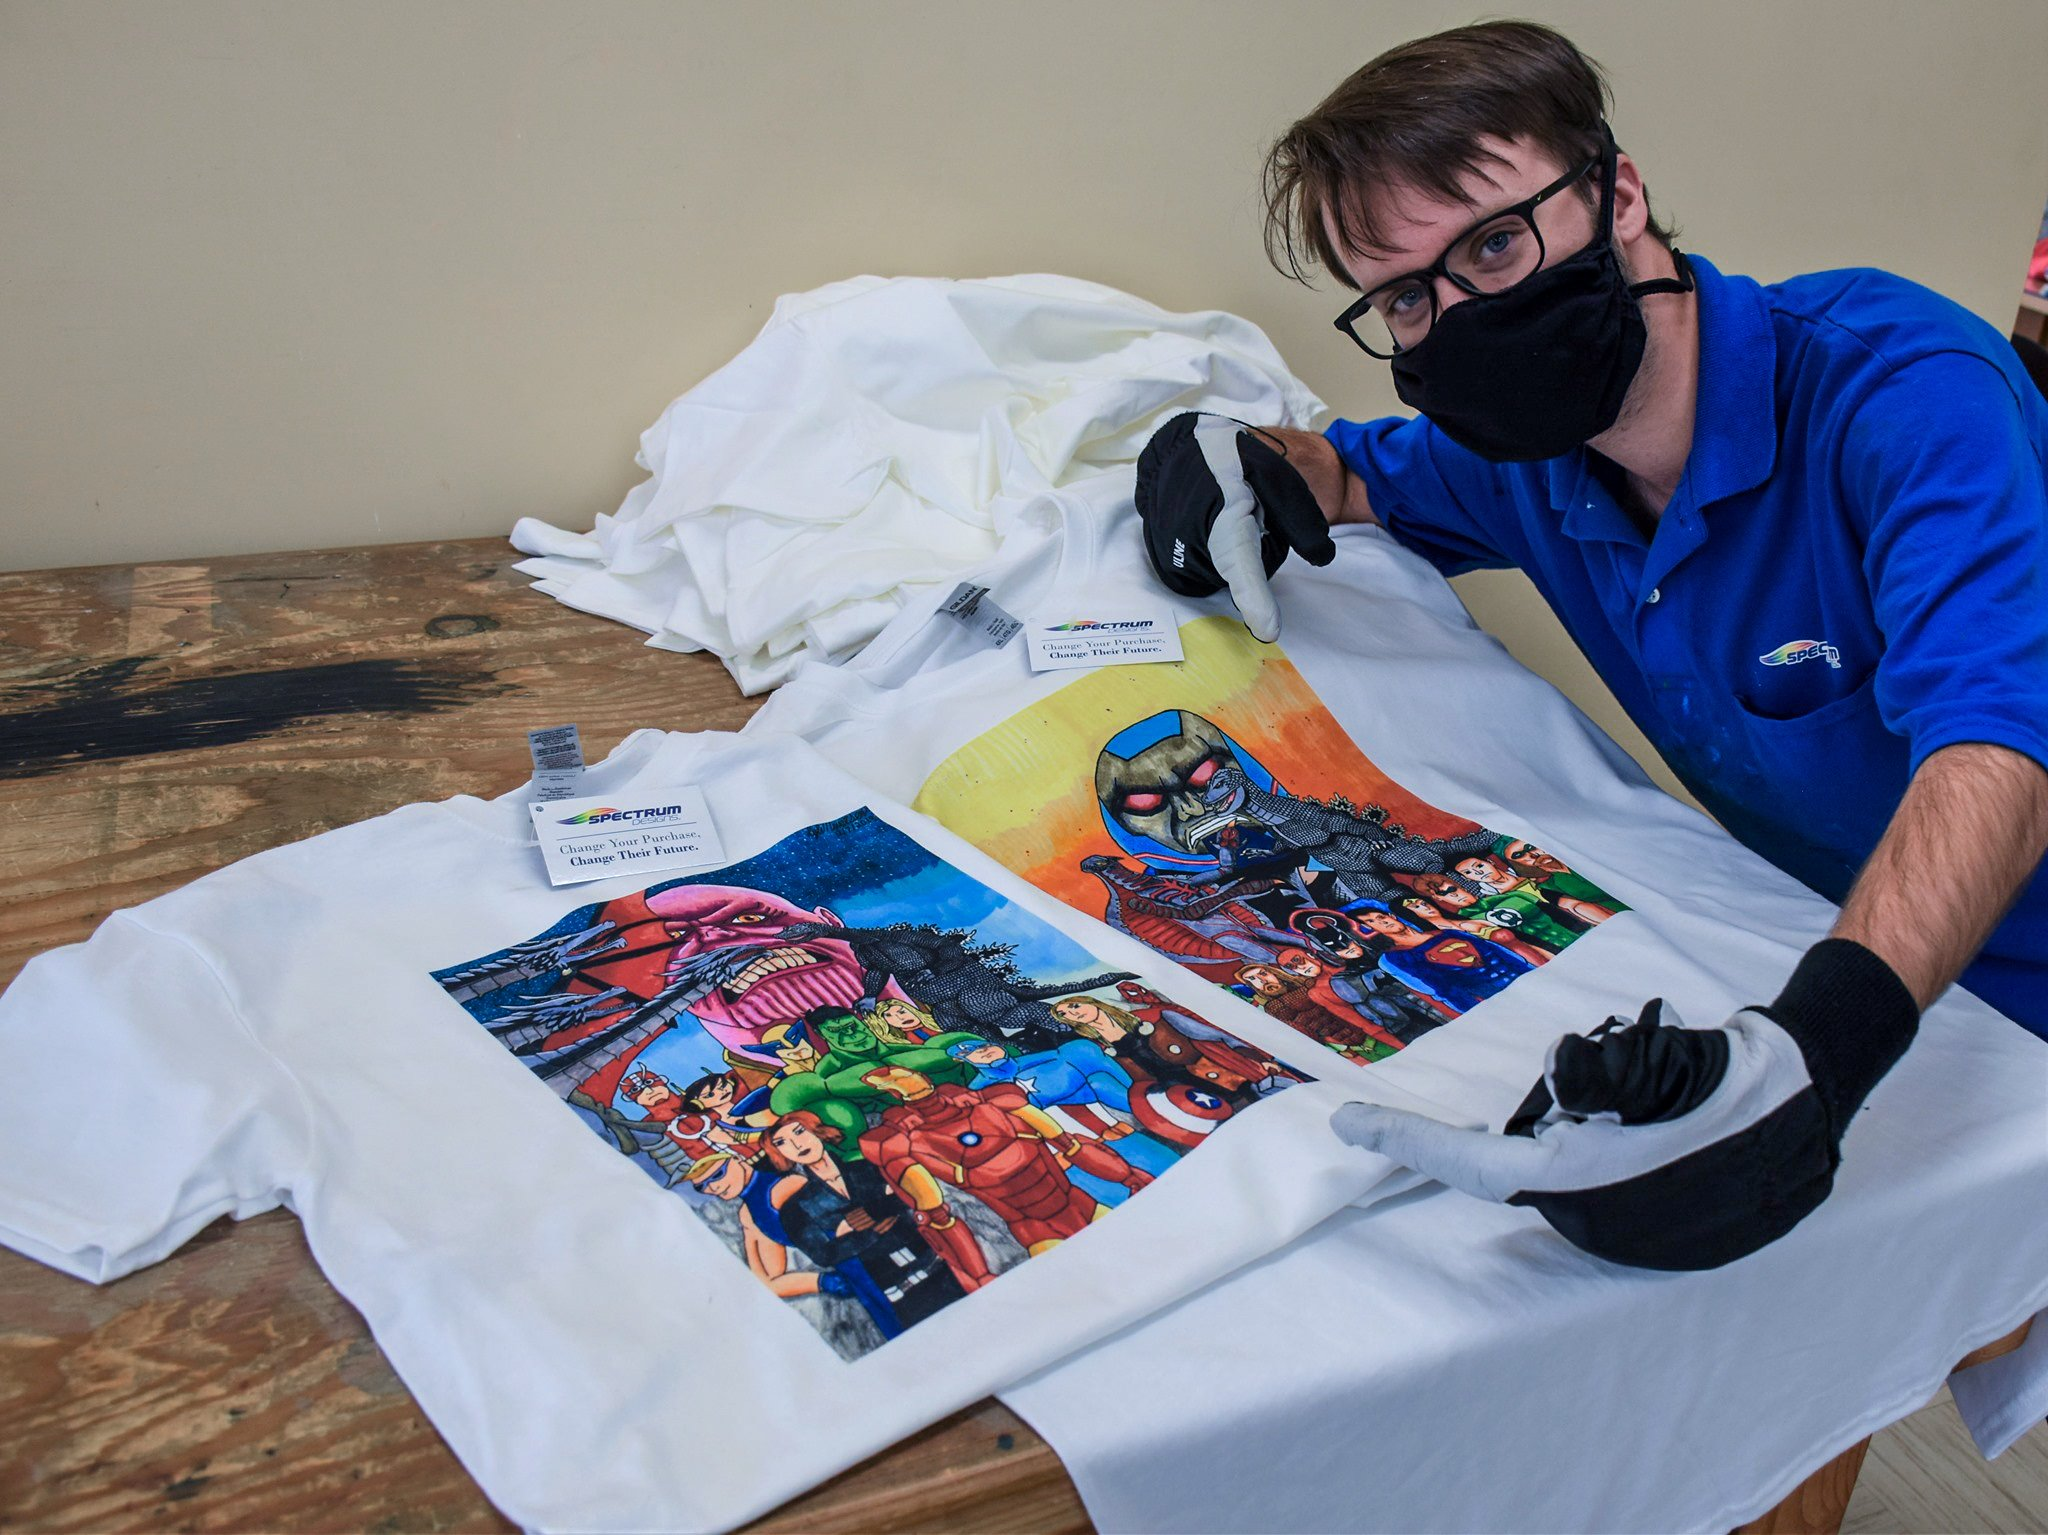 Spectrum Designs: Custom Apparel Shop Employing Adults with Autism